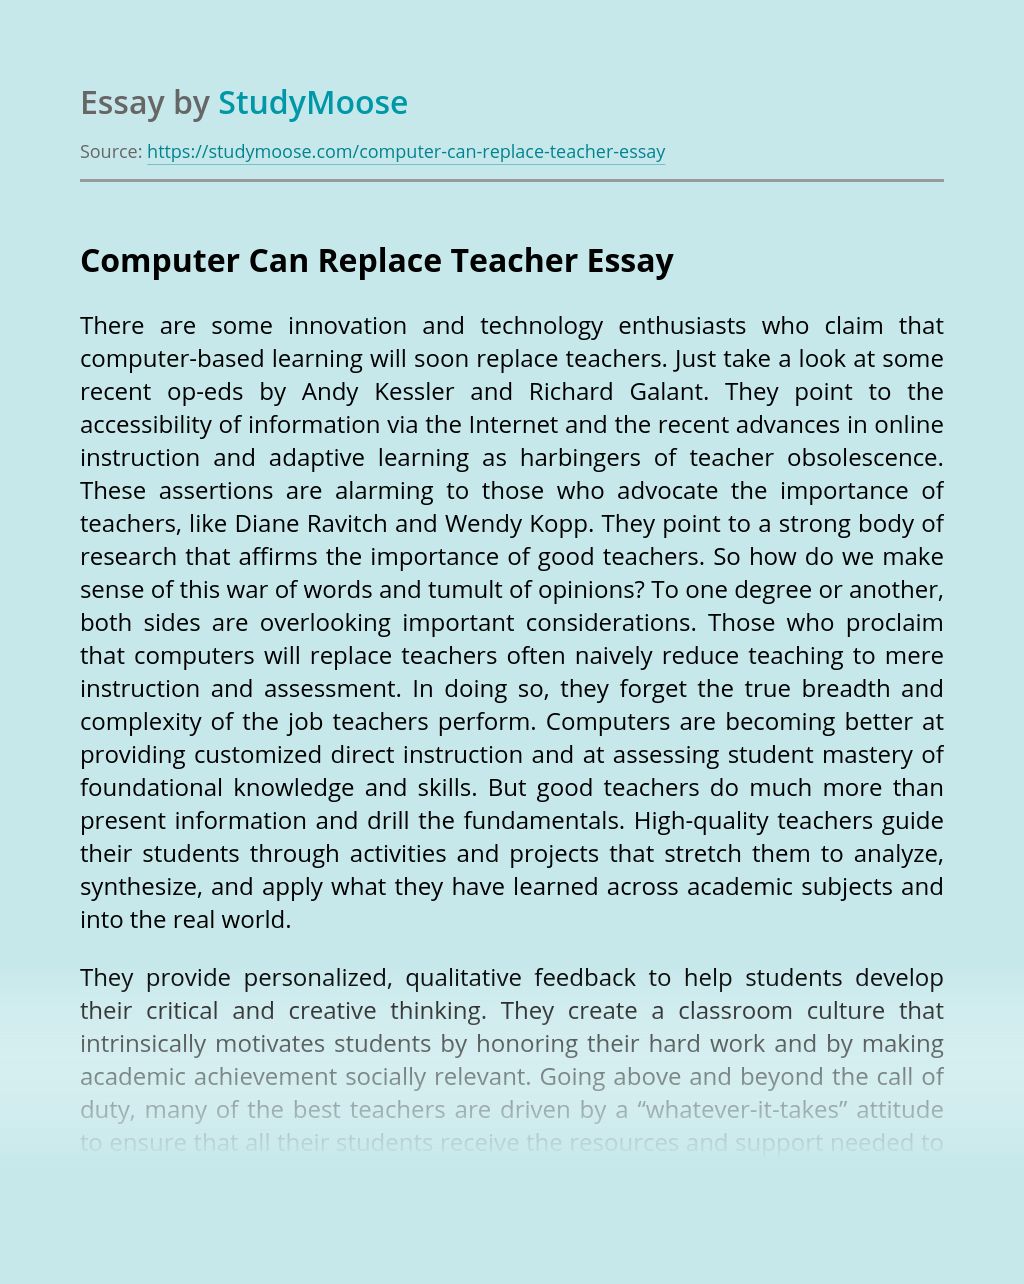 Computer Can Replace Teacher